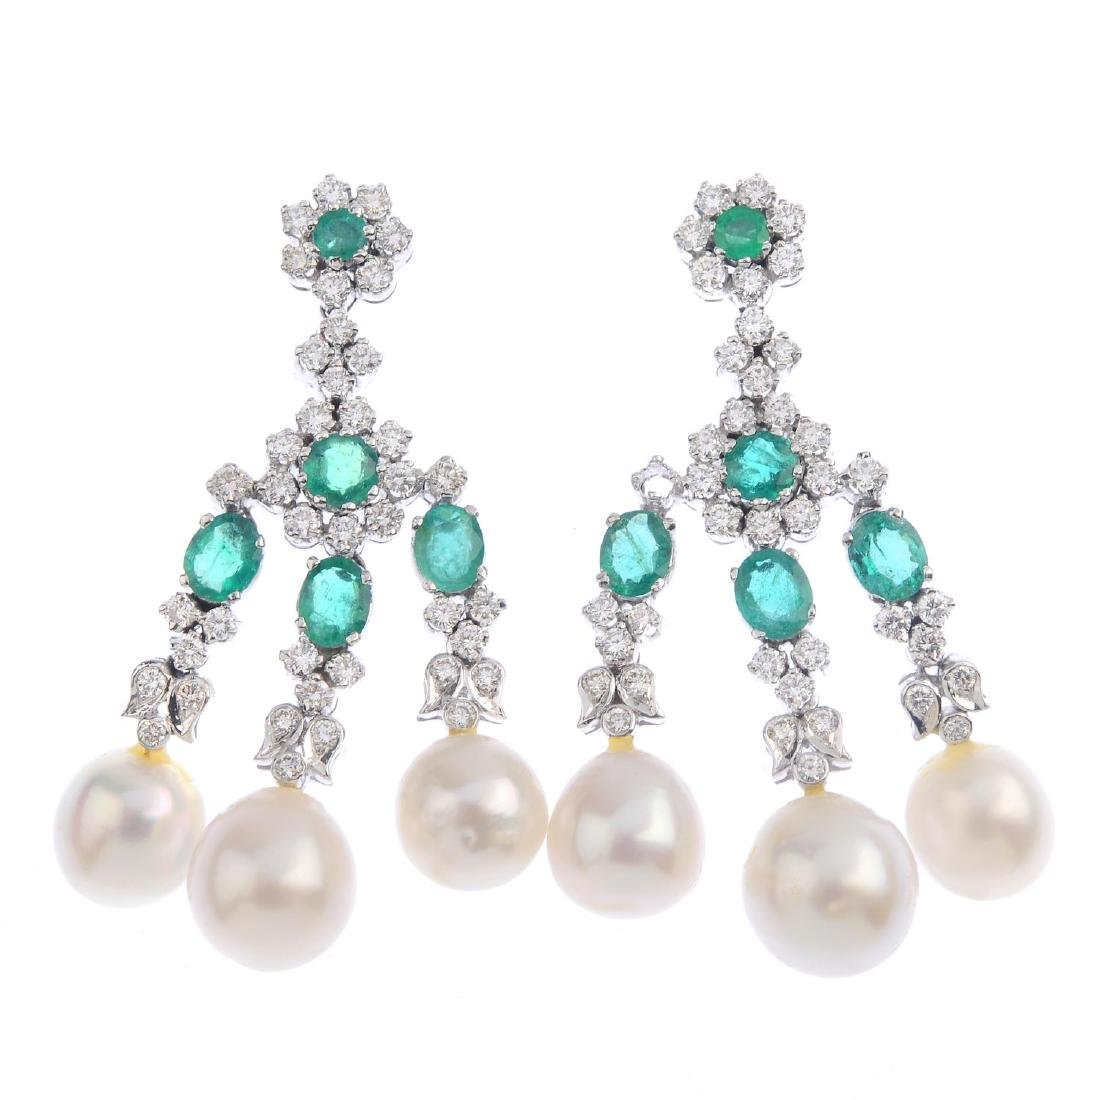 A pair of cultured pearl, emerald and diamond